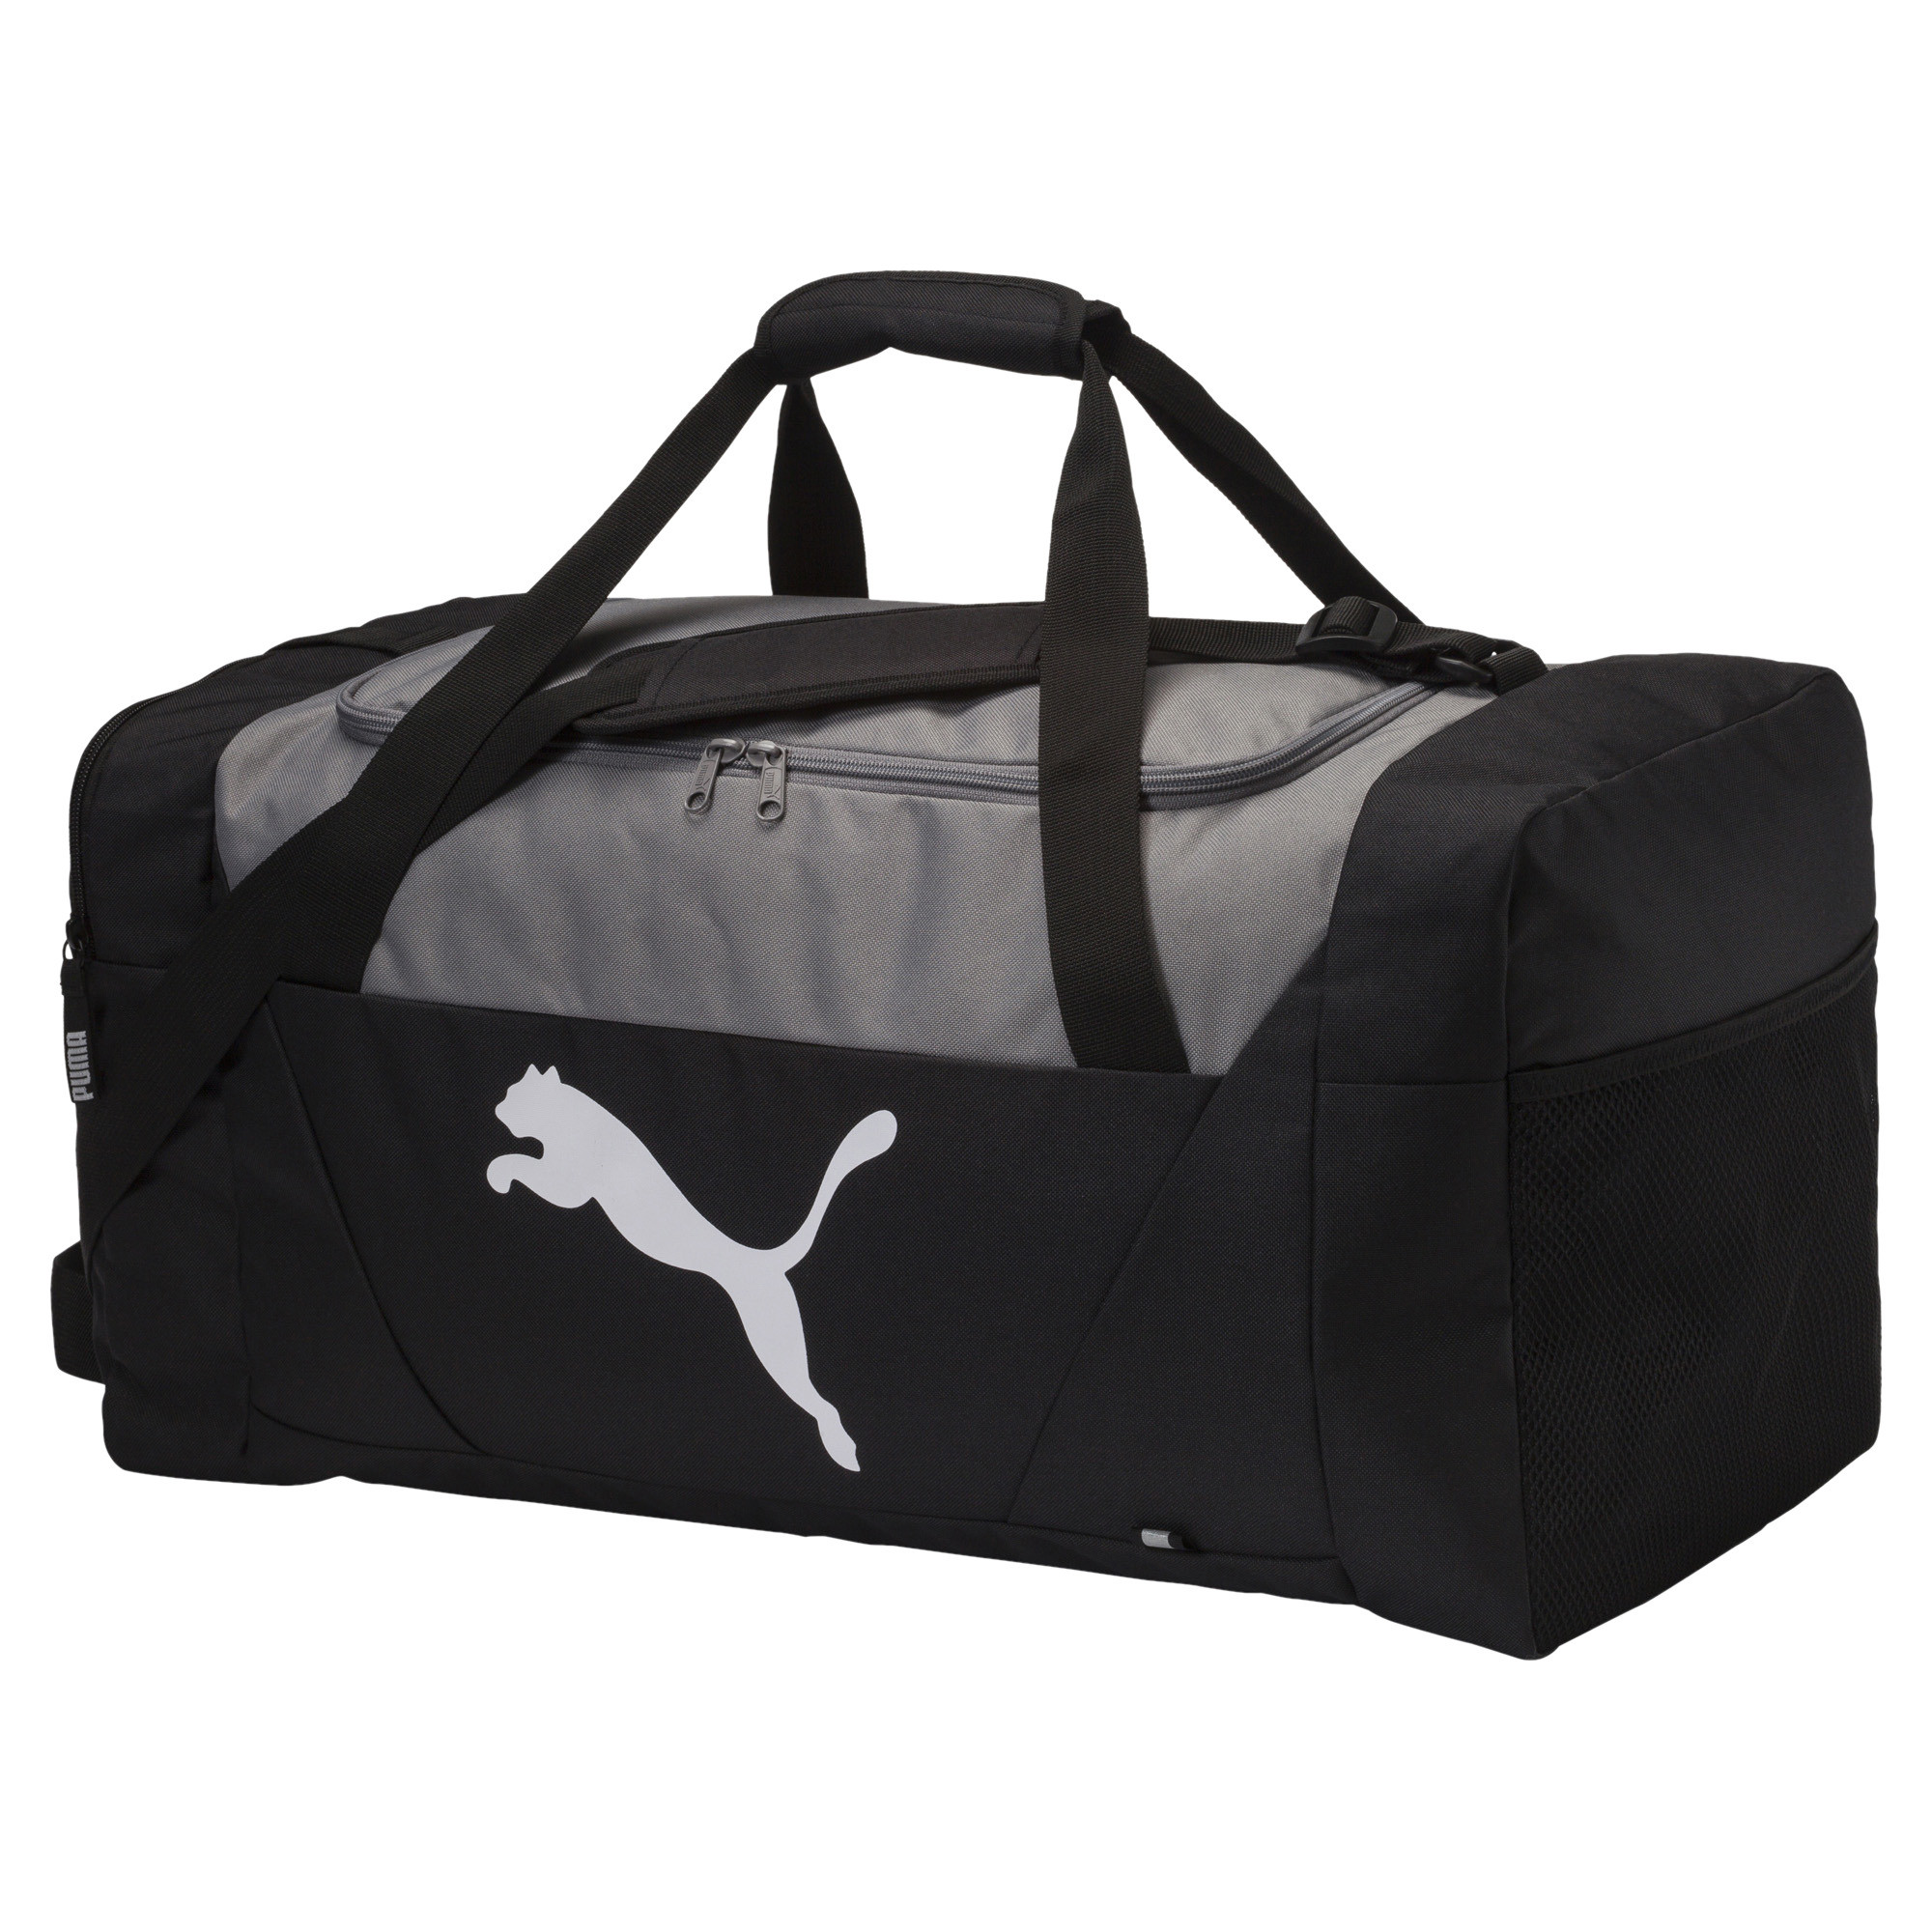 1e70f583a6 Fundamentals Sports Bag | 10 - Black | Puma